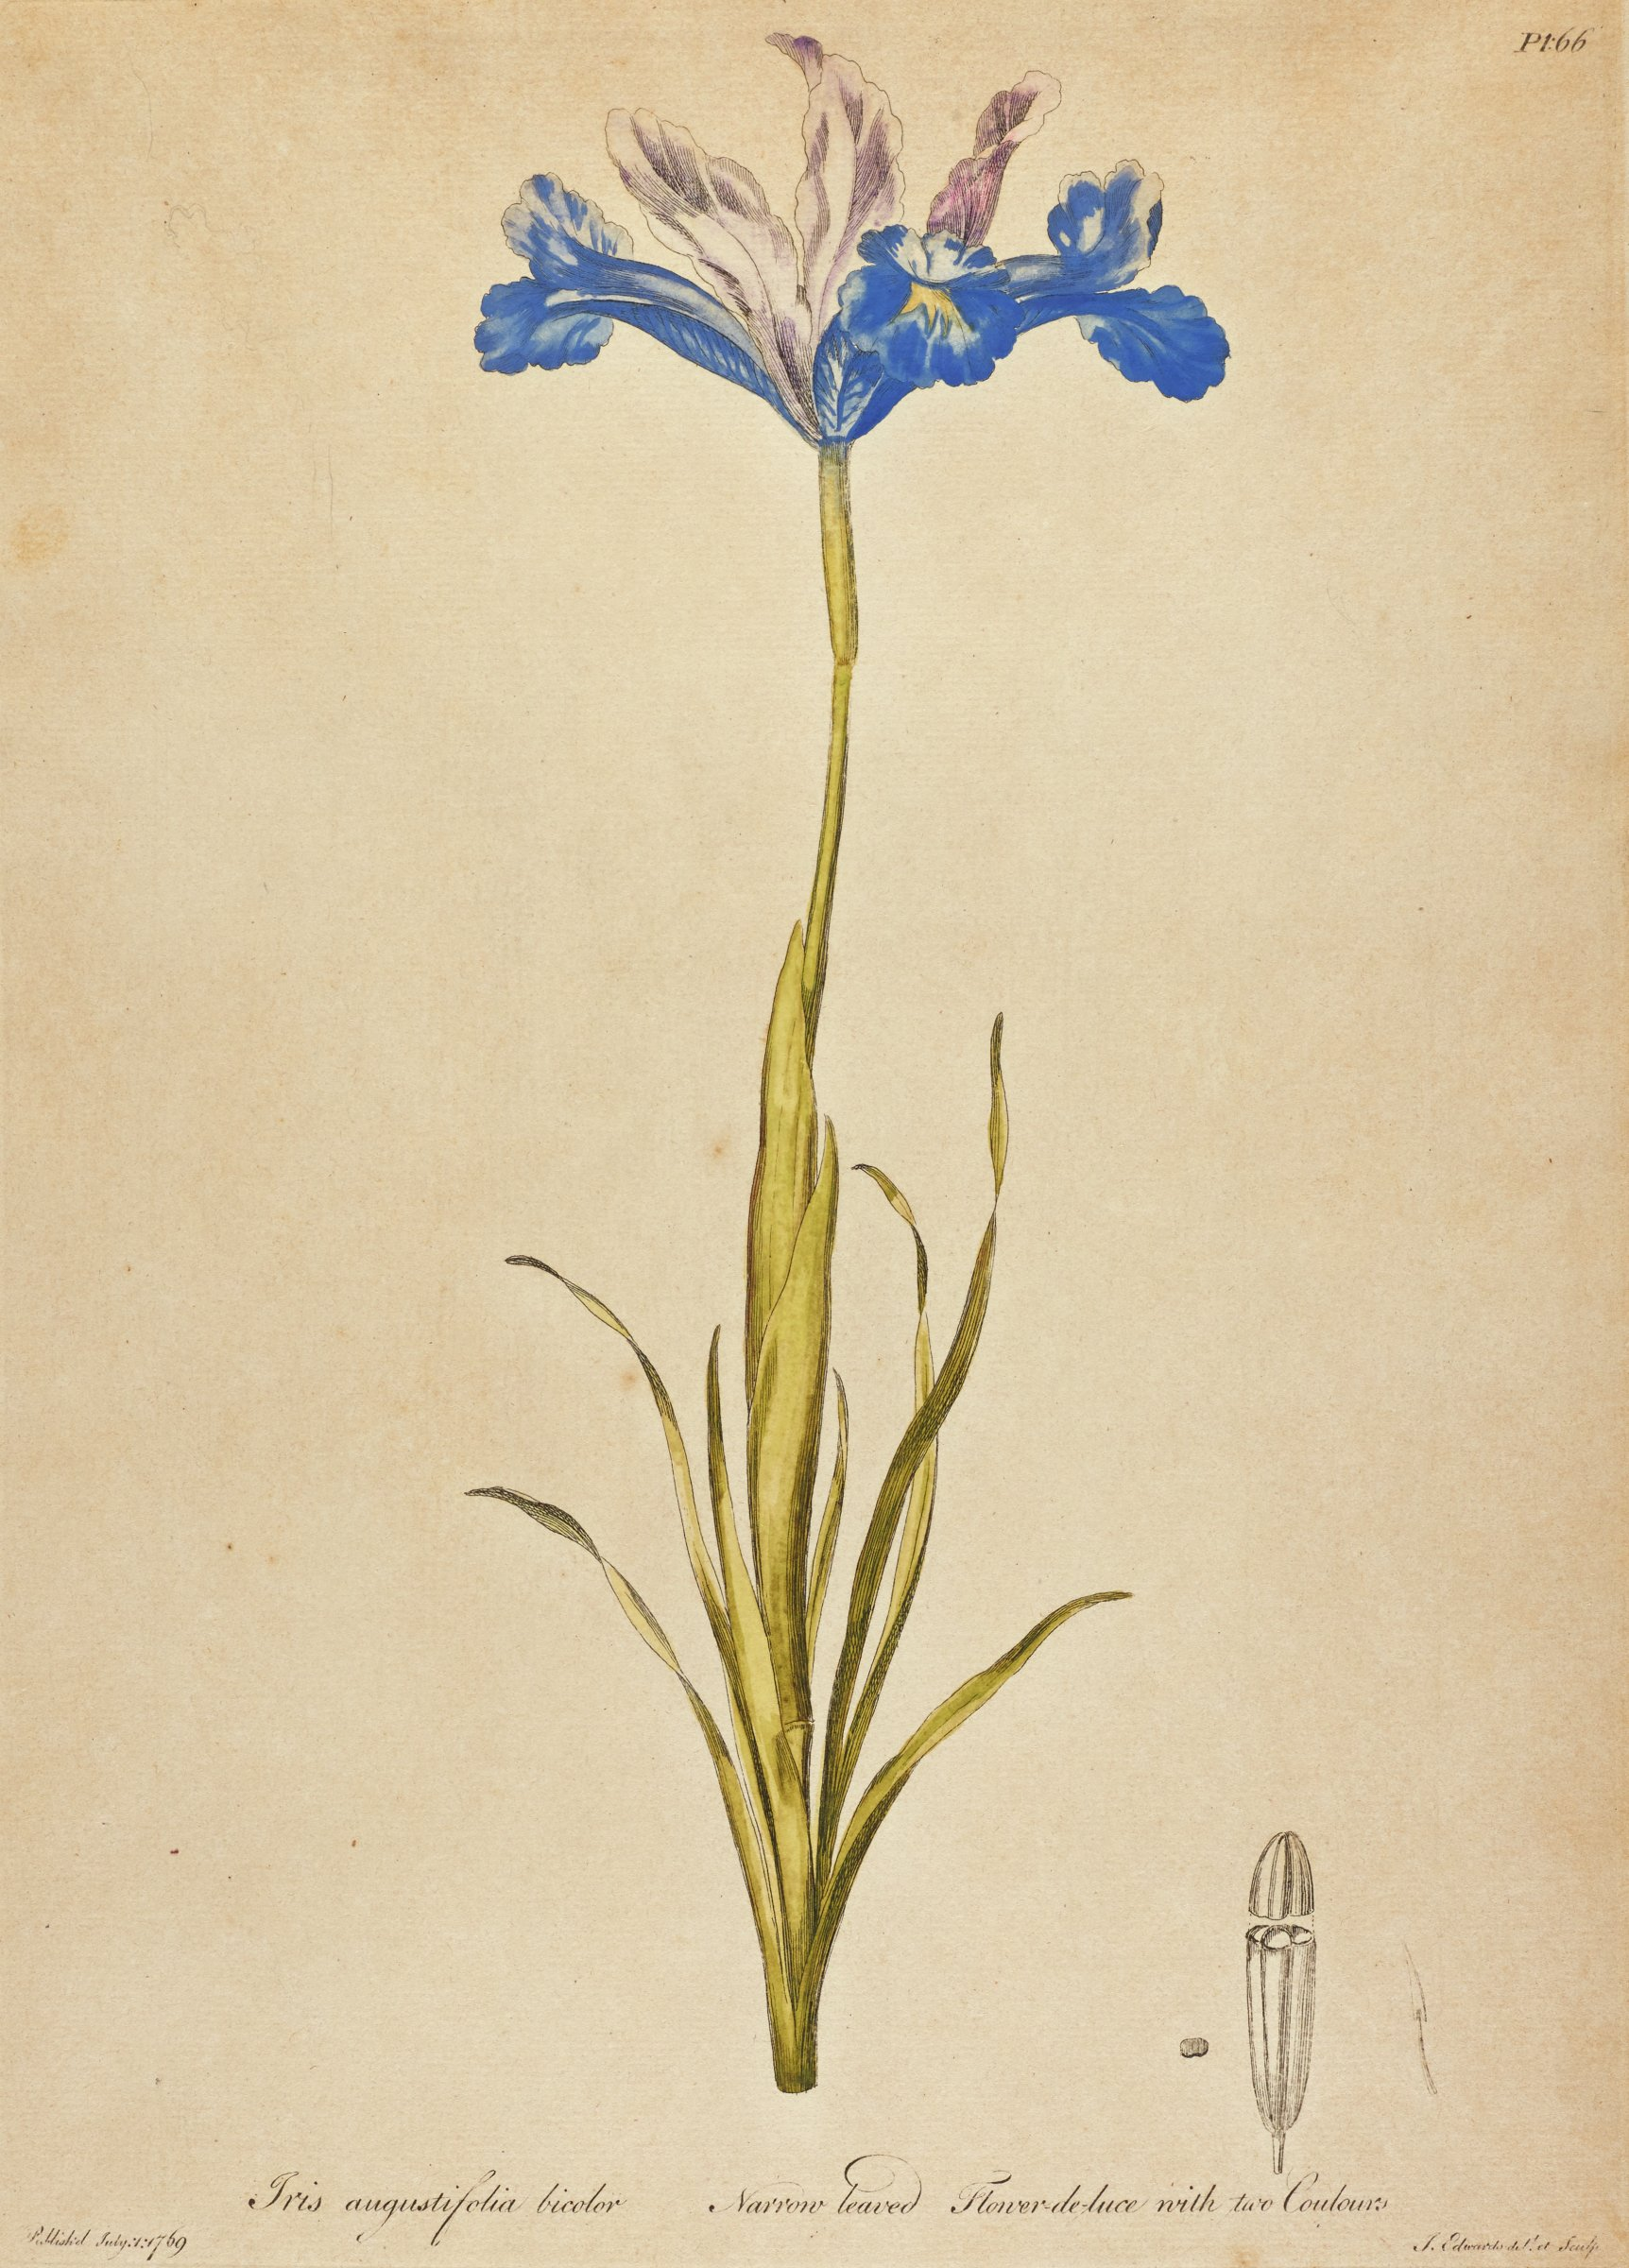 A botanical print depicting a thin stemmed flower with blue and light purple petals. An uncolored image appears in the lower right.